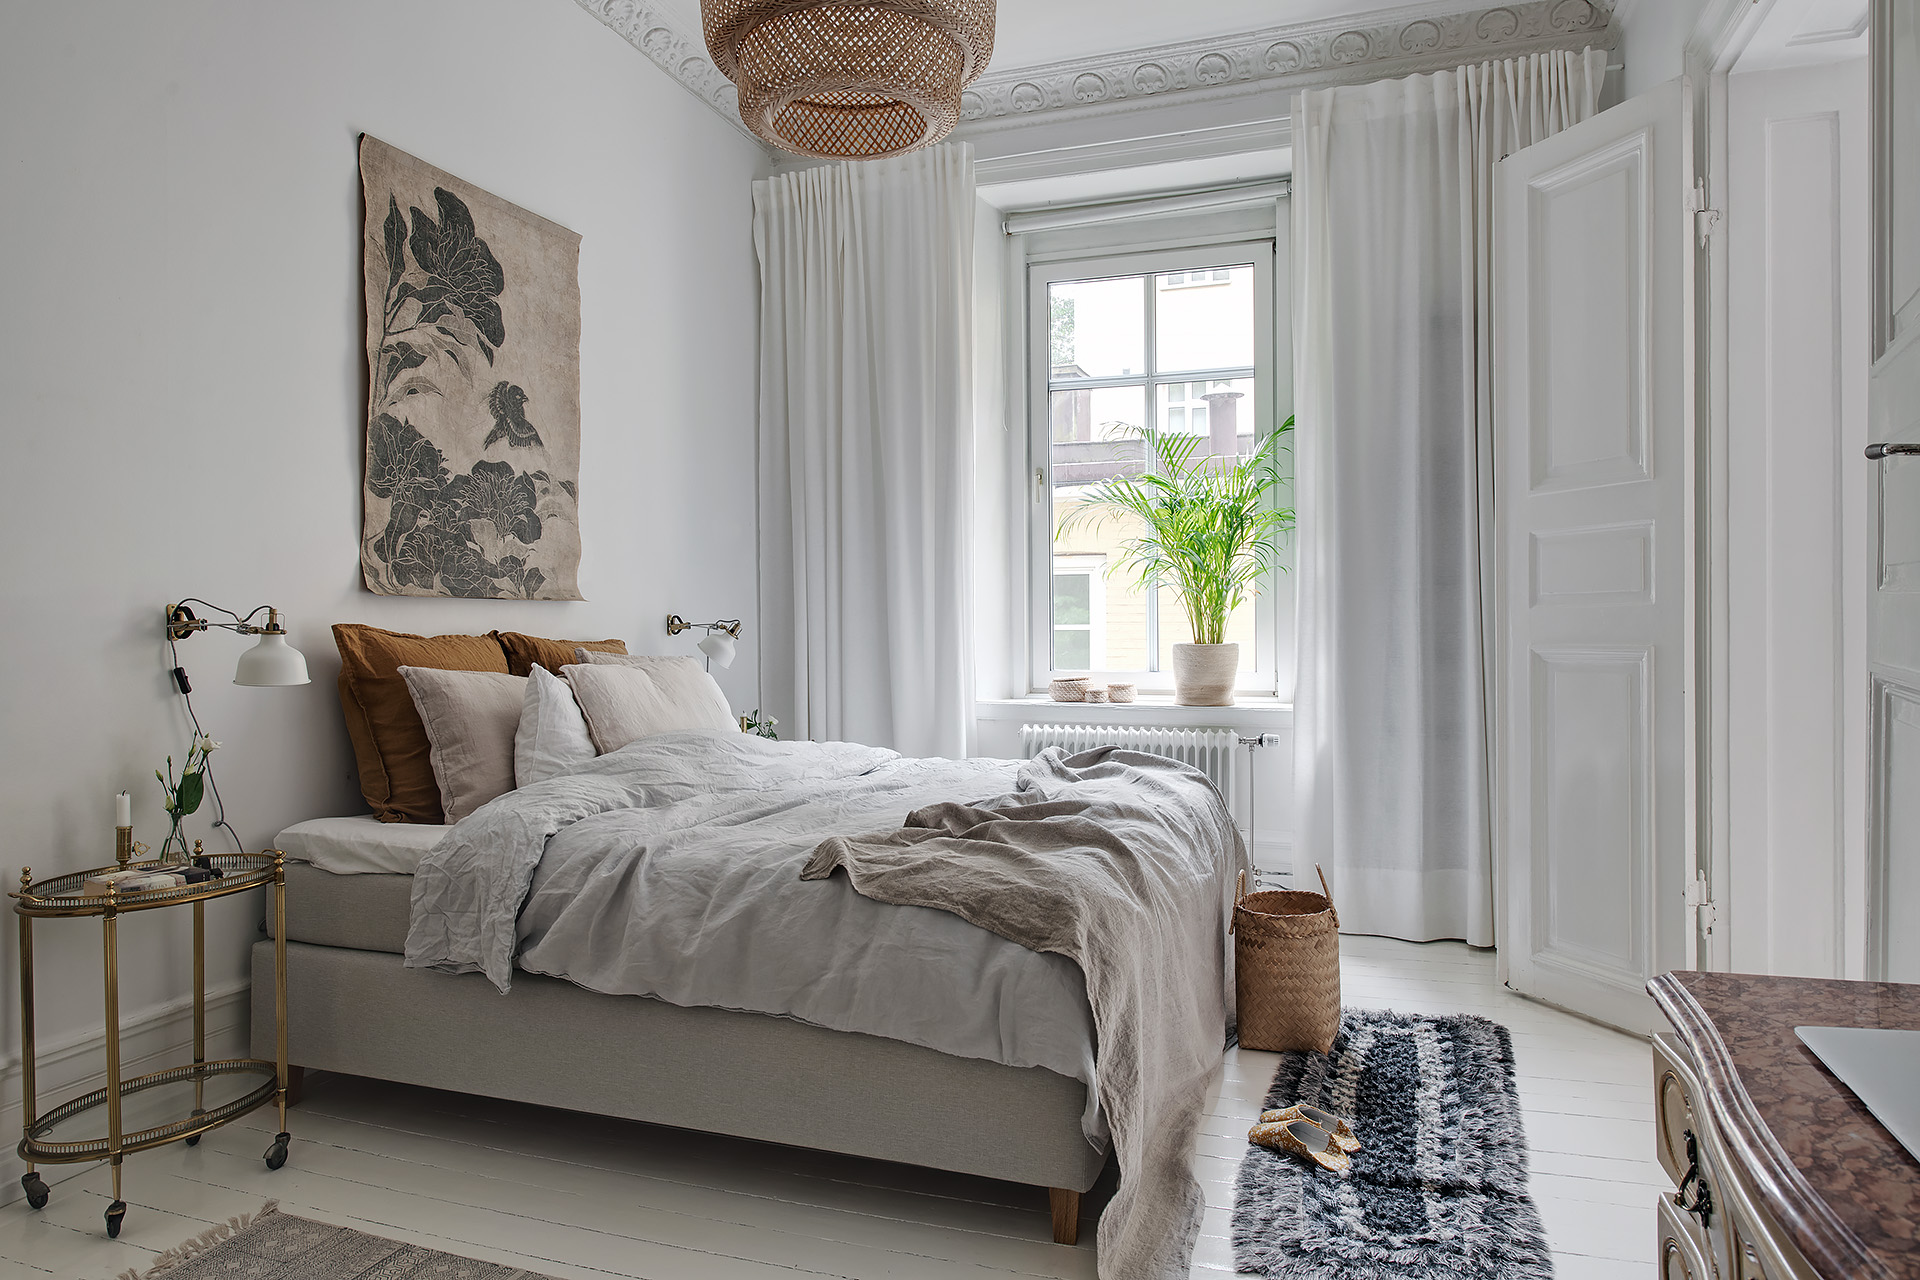 Cozy And Characterful Home Coco Lapine Designcoco Lapine